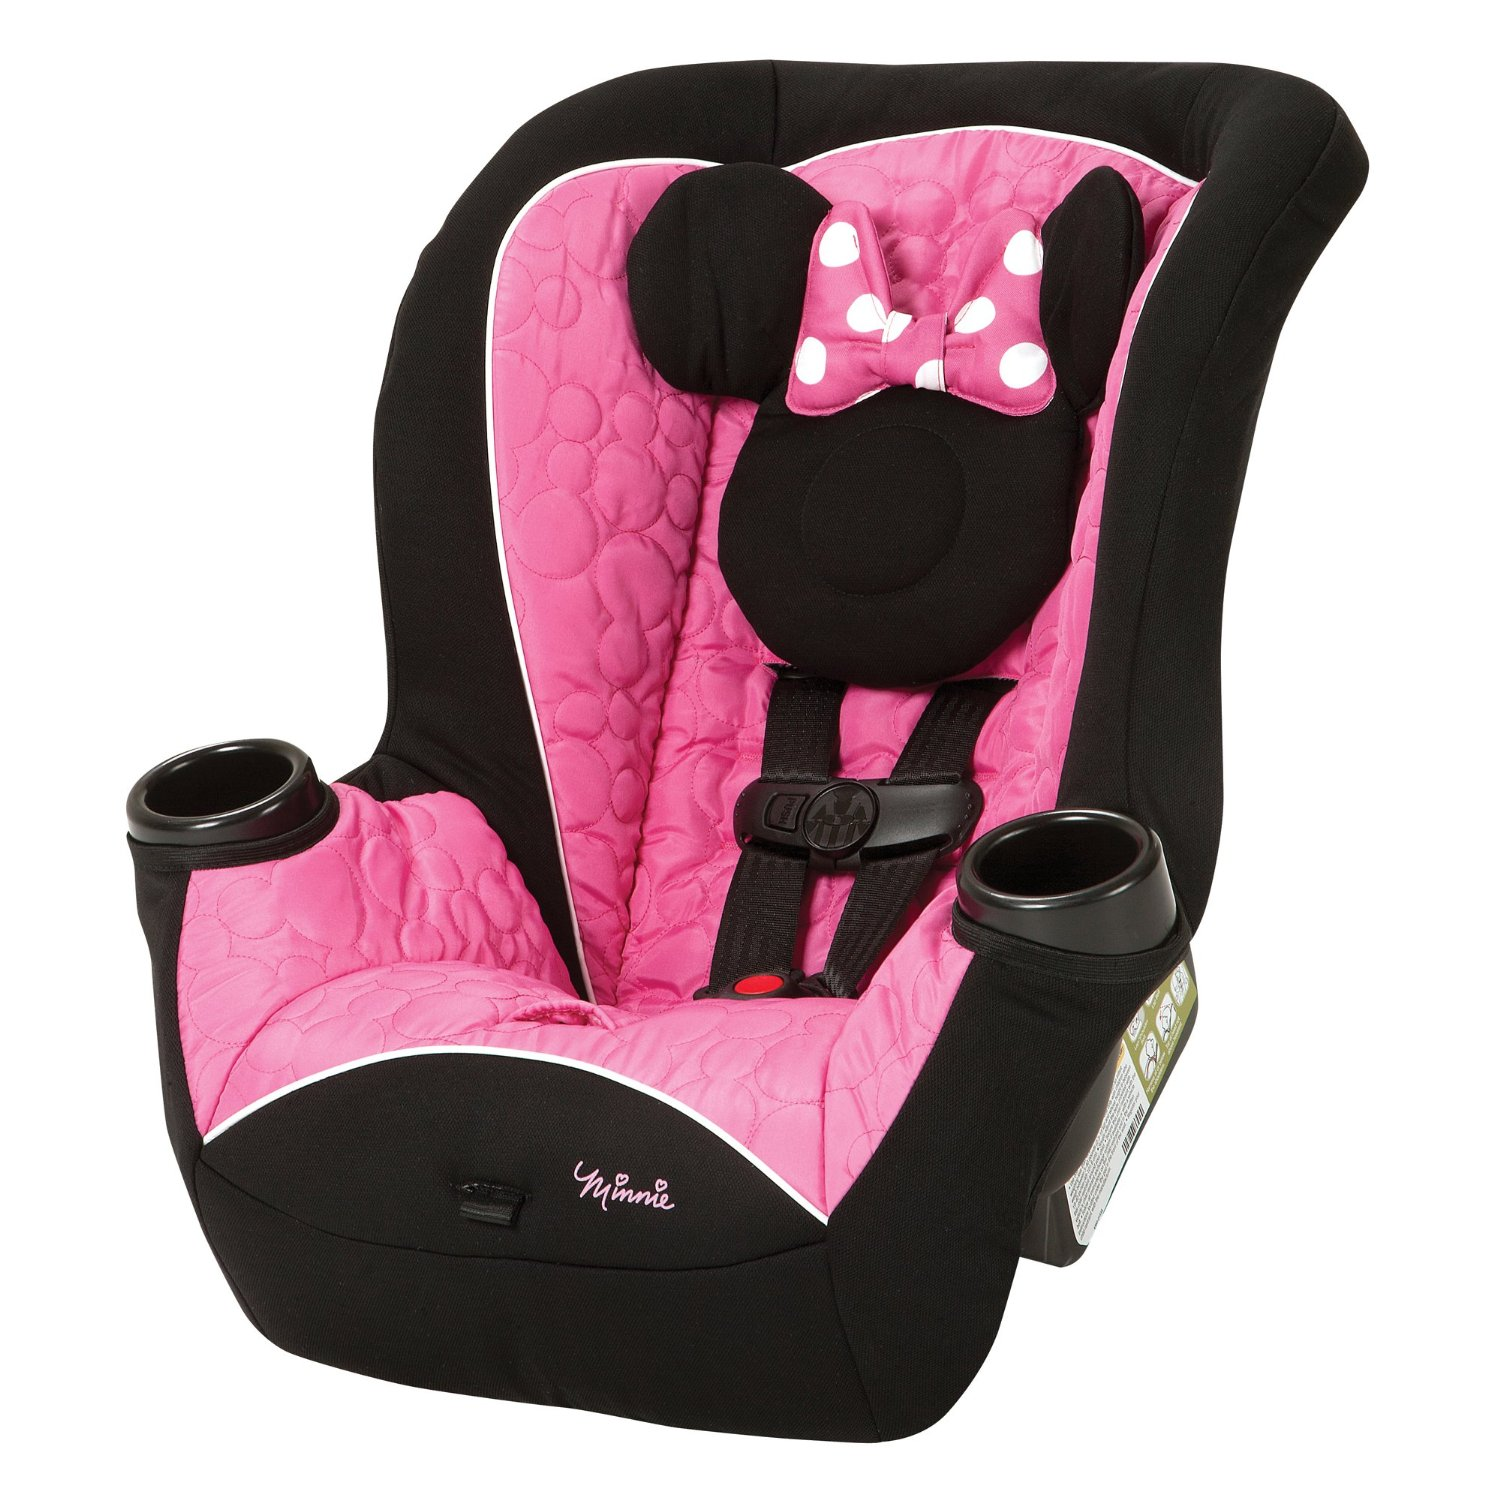 #7. Disney APT Convertible Car seat